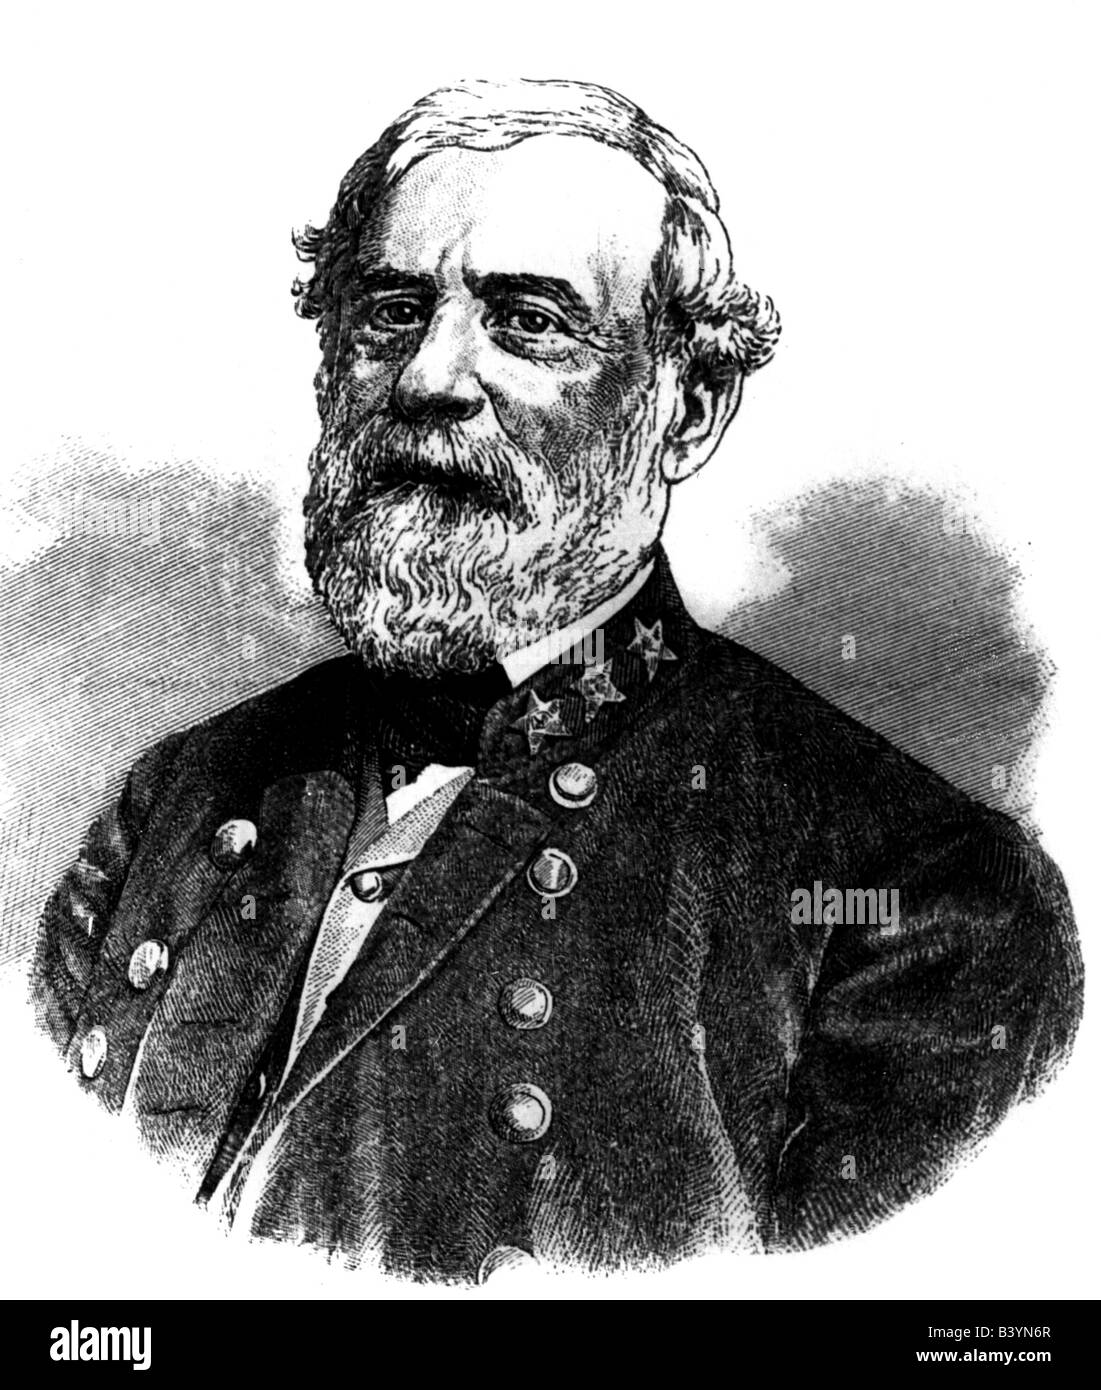 a brief biography of general robert lee The canonization of confederate gen robert e lee began shortly after 5 pm, may 7, 1890, on the docks of the james river in richmond that's when at least 10,000 citizens clamped 20,000 hands .